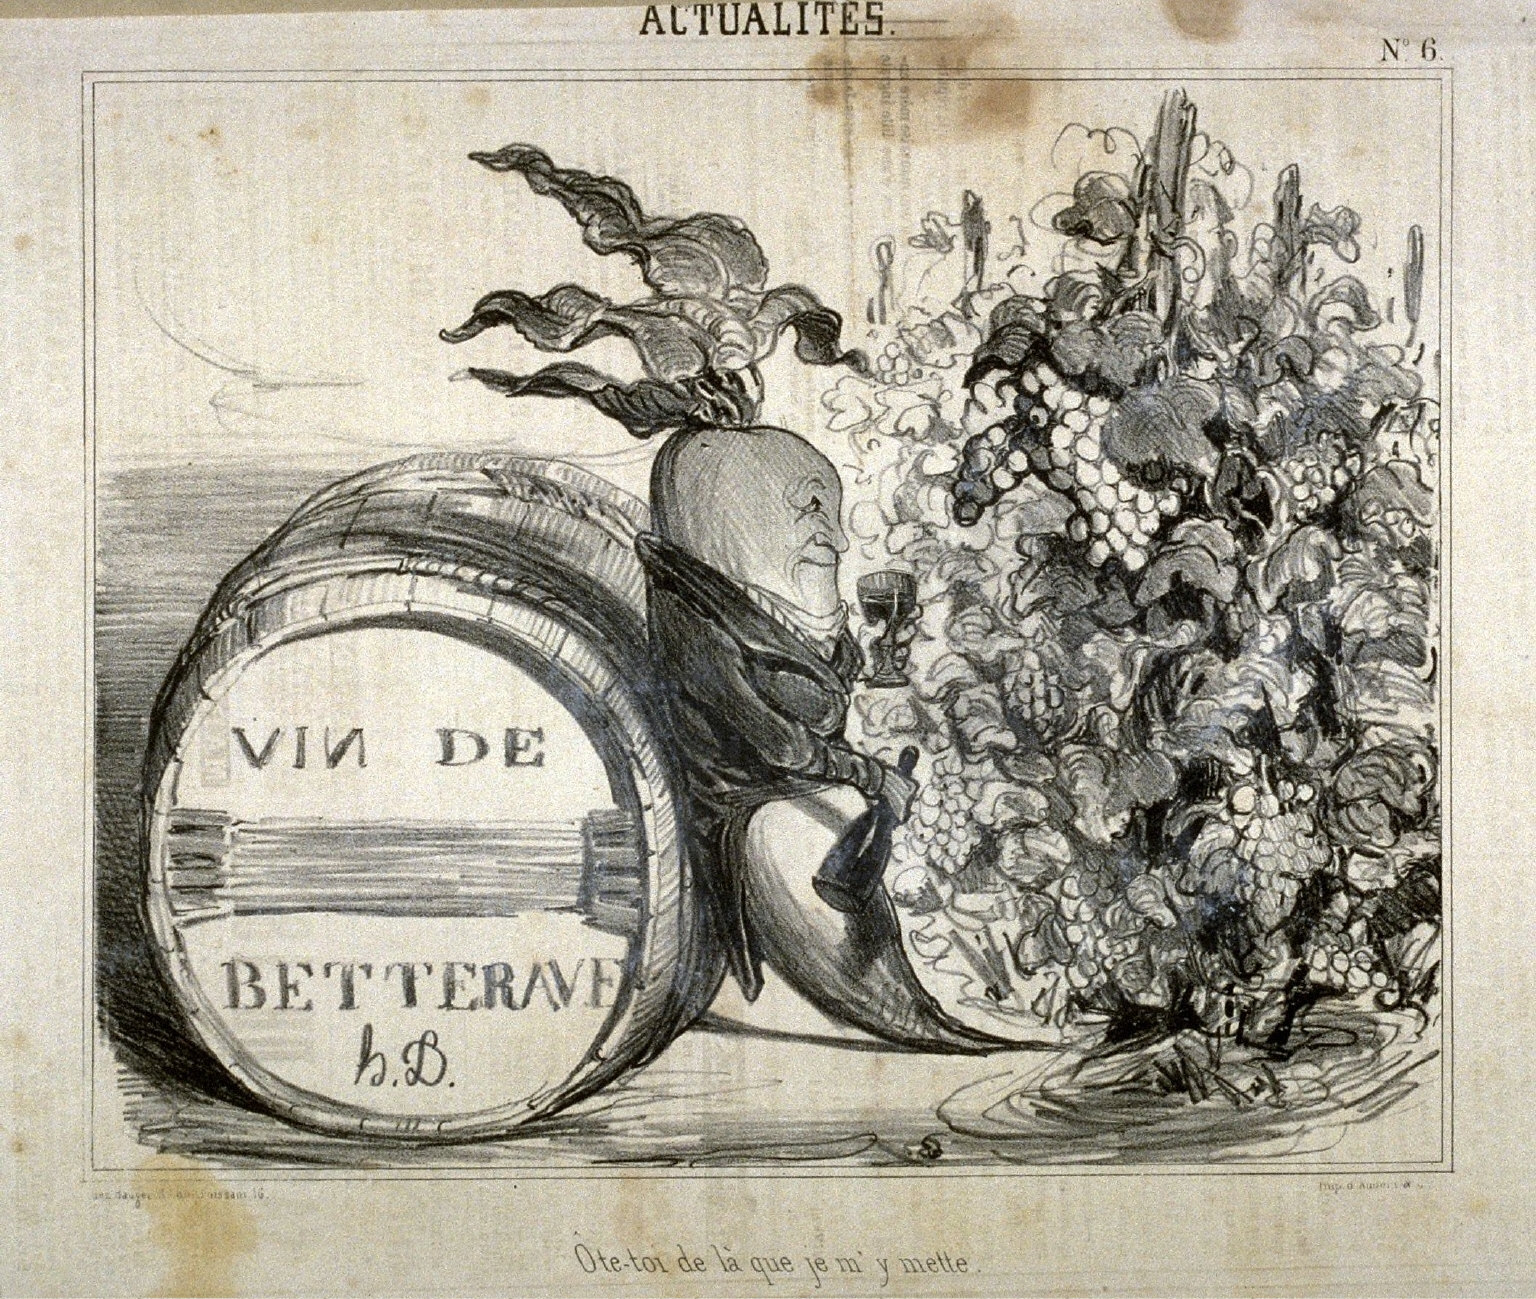 Ote-toi de là que je my mette.. no. 6 from the series Actaulités, published in Le Charivari 28 September 1839